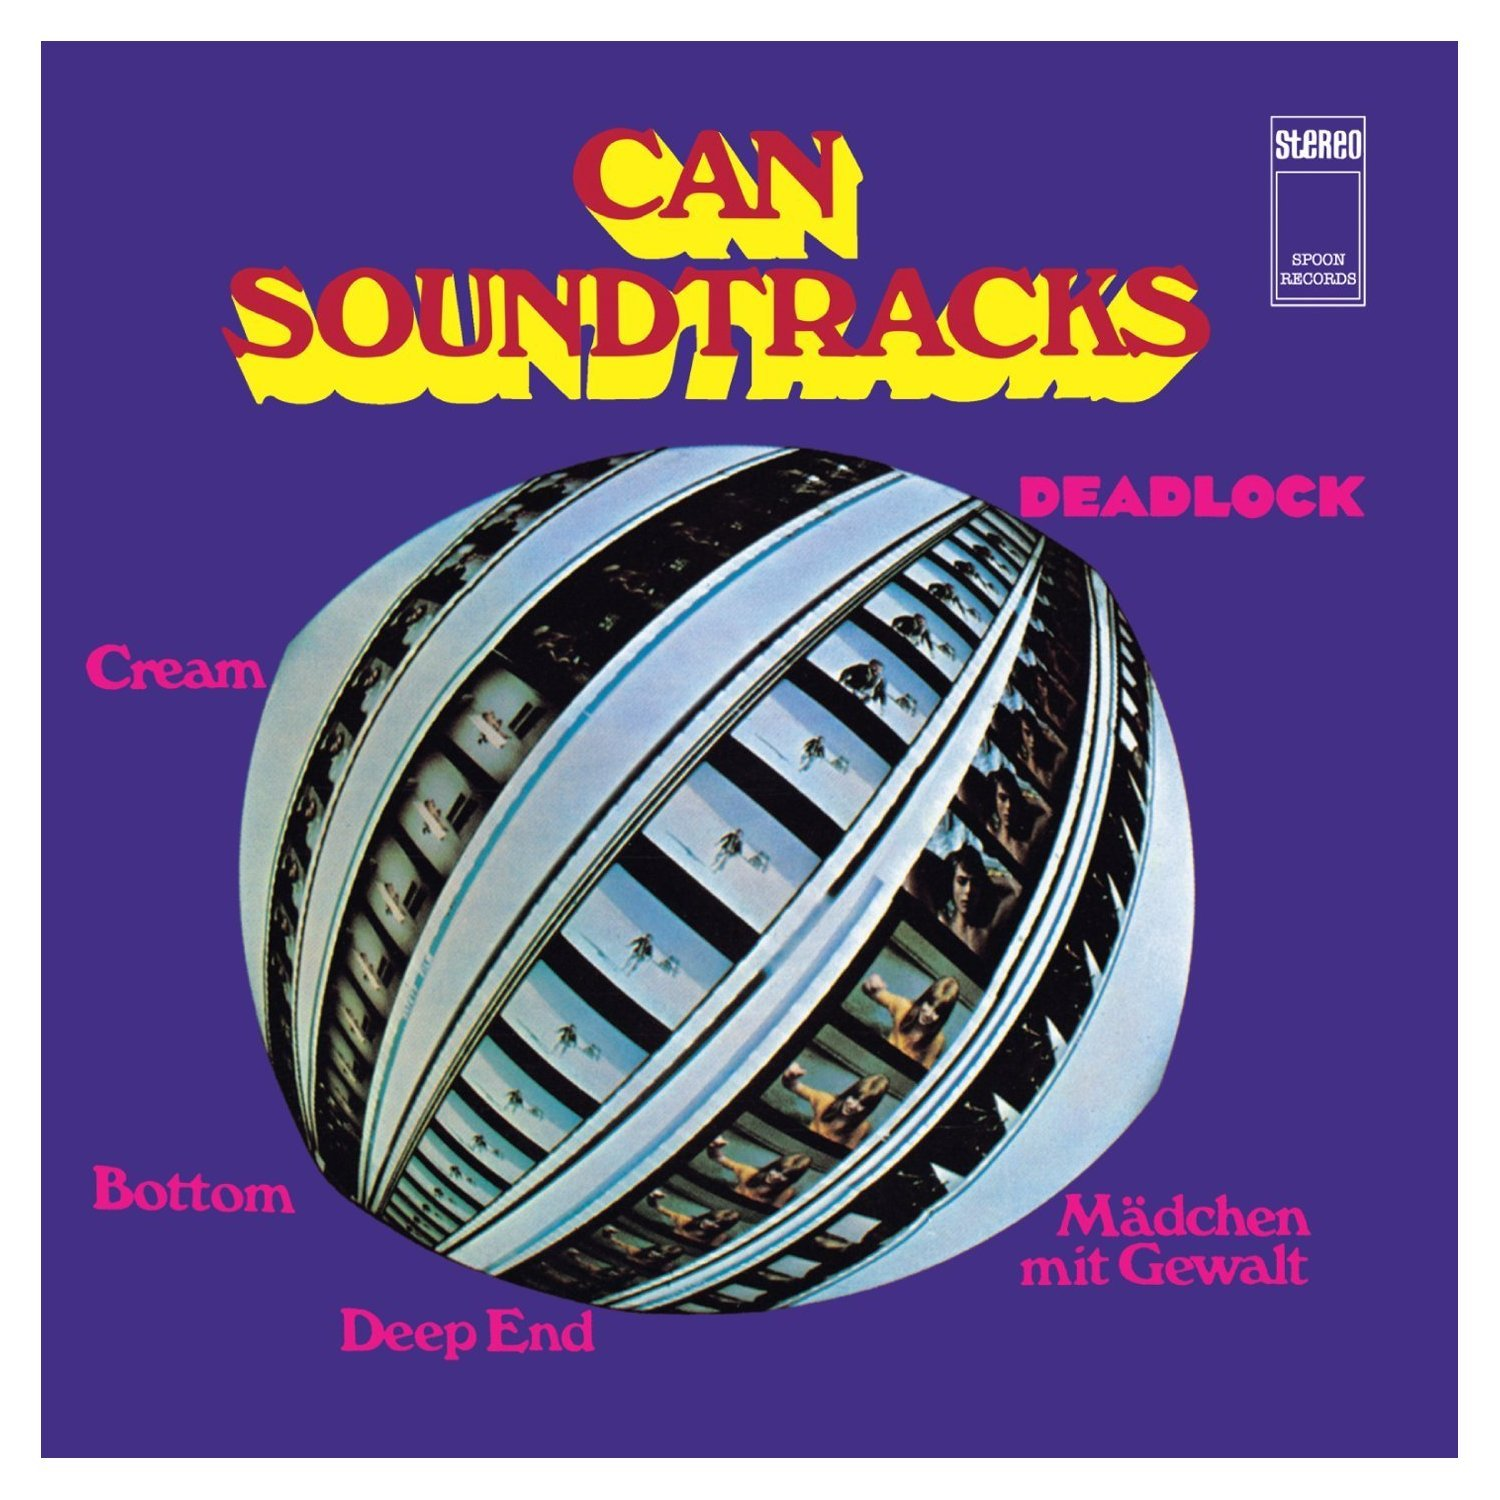 Can: Soundtracks by Emi Import